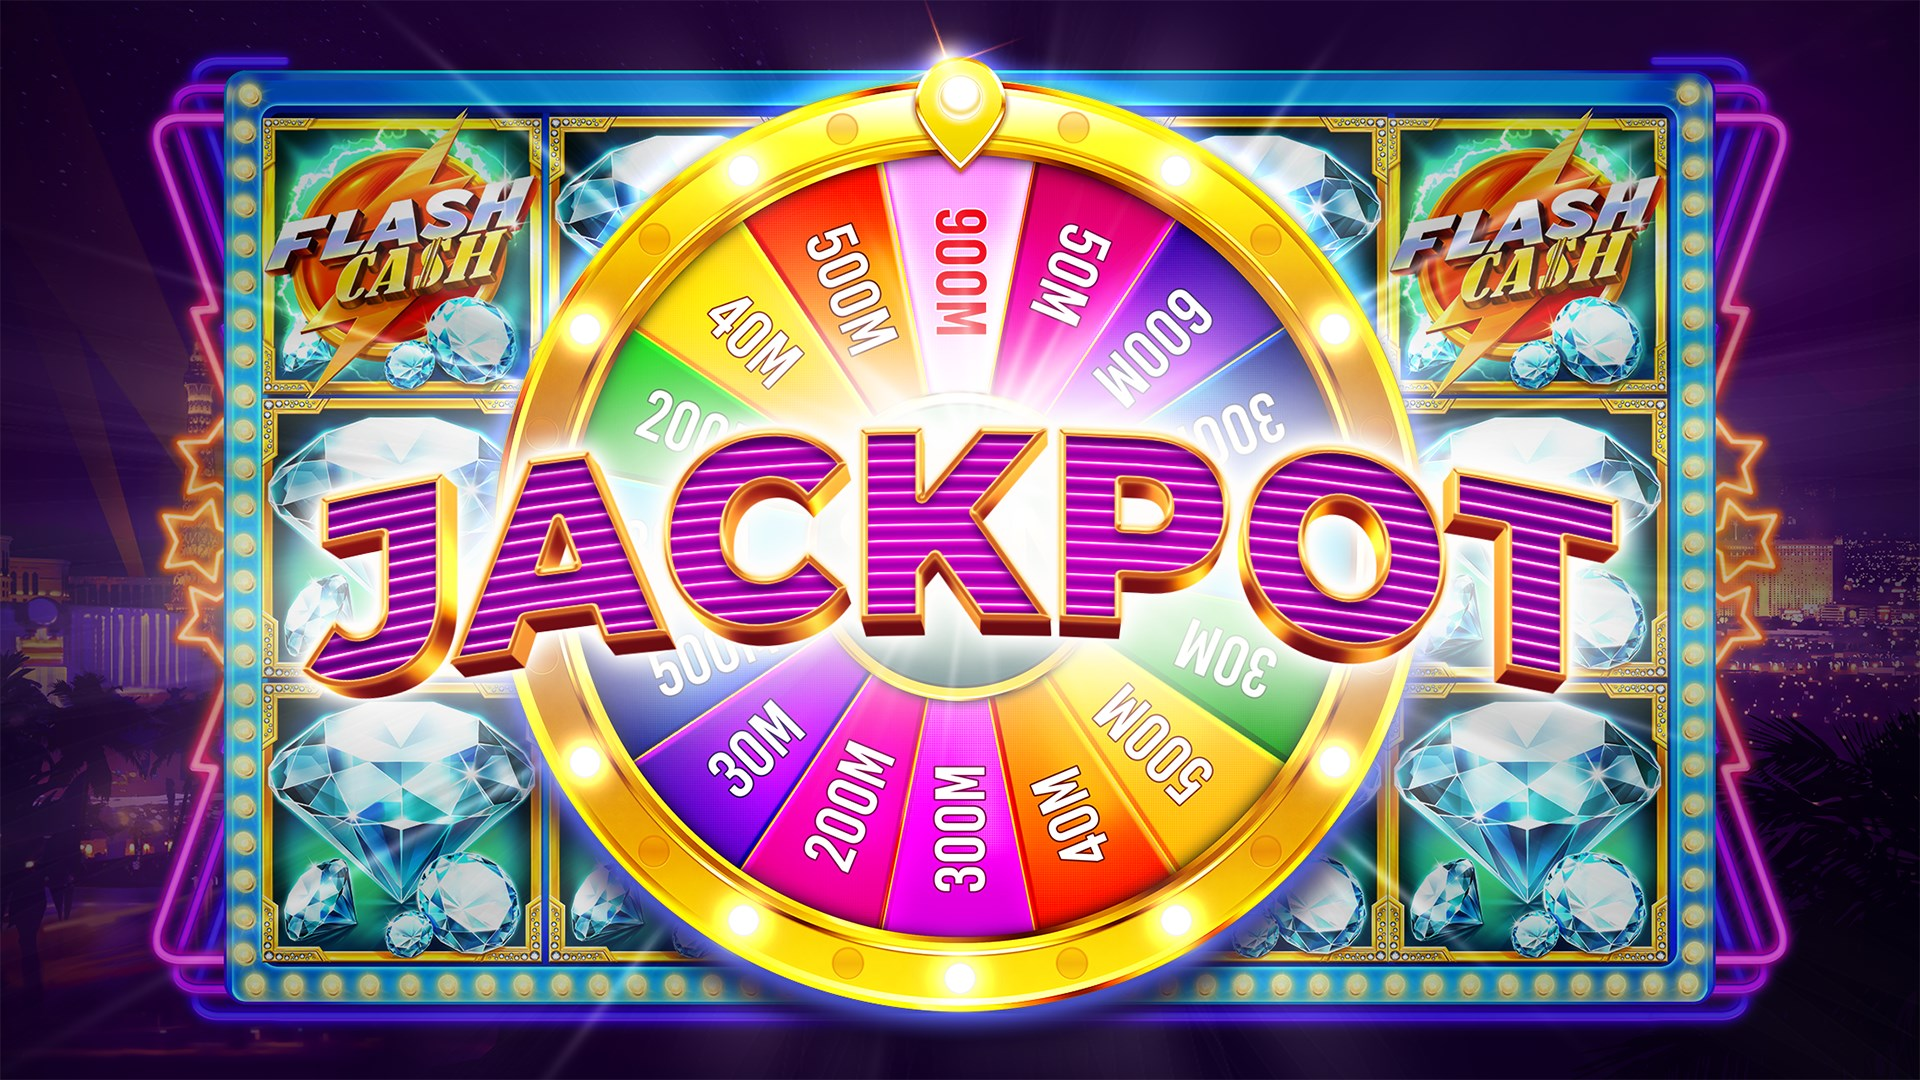 Understanding the Mechanics When Choosing the Jackpot Slot Game